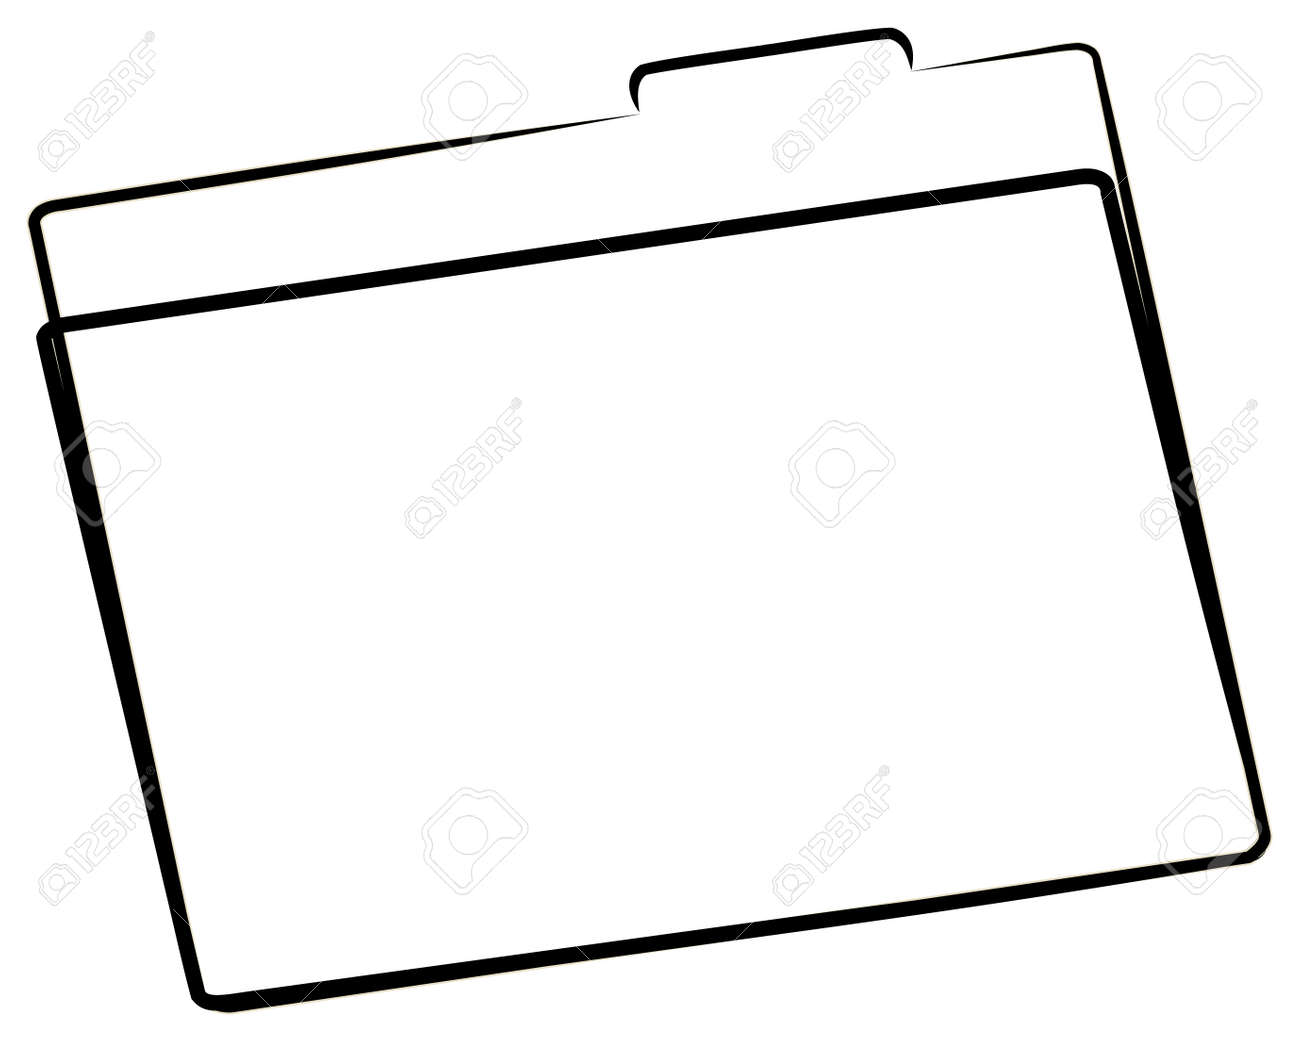 office file folder or manila folder outline - vector Stock Vector - 2704156